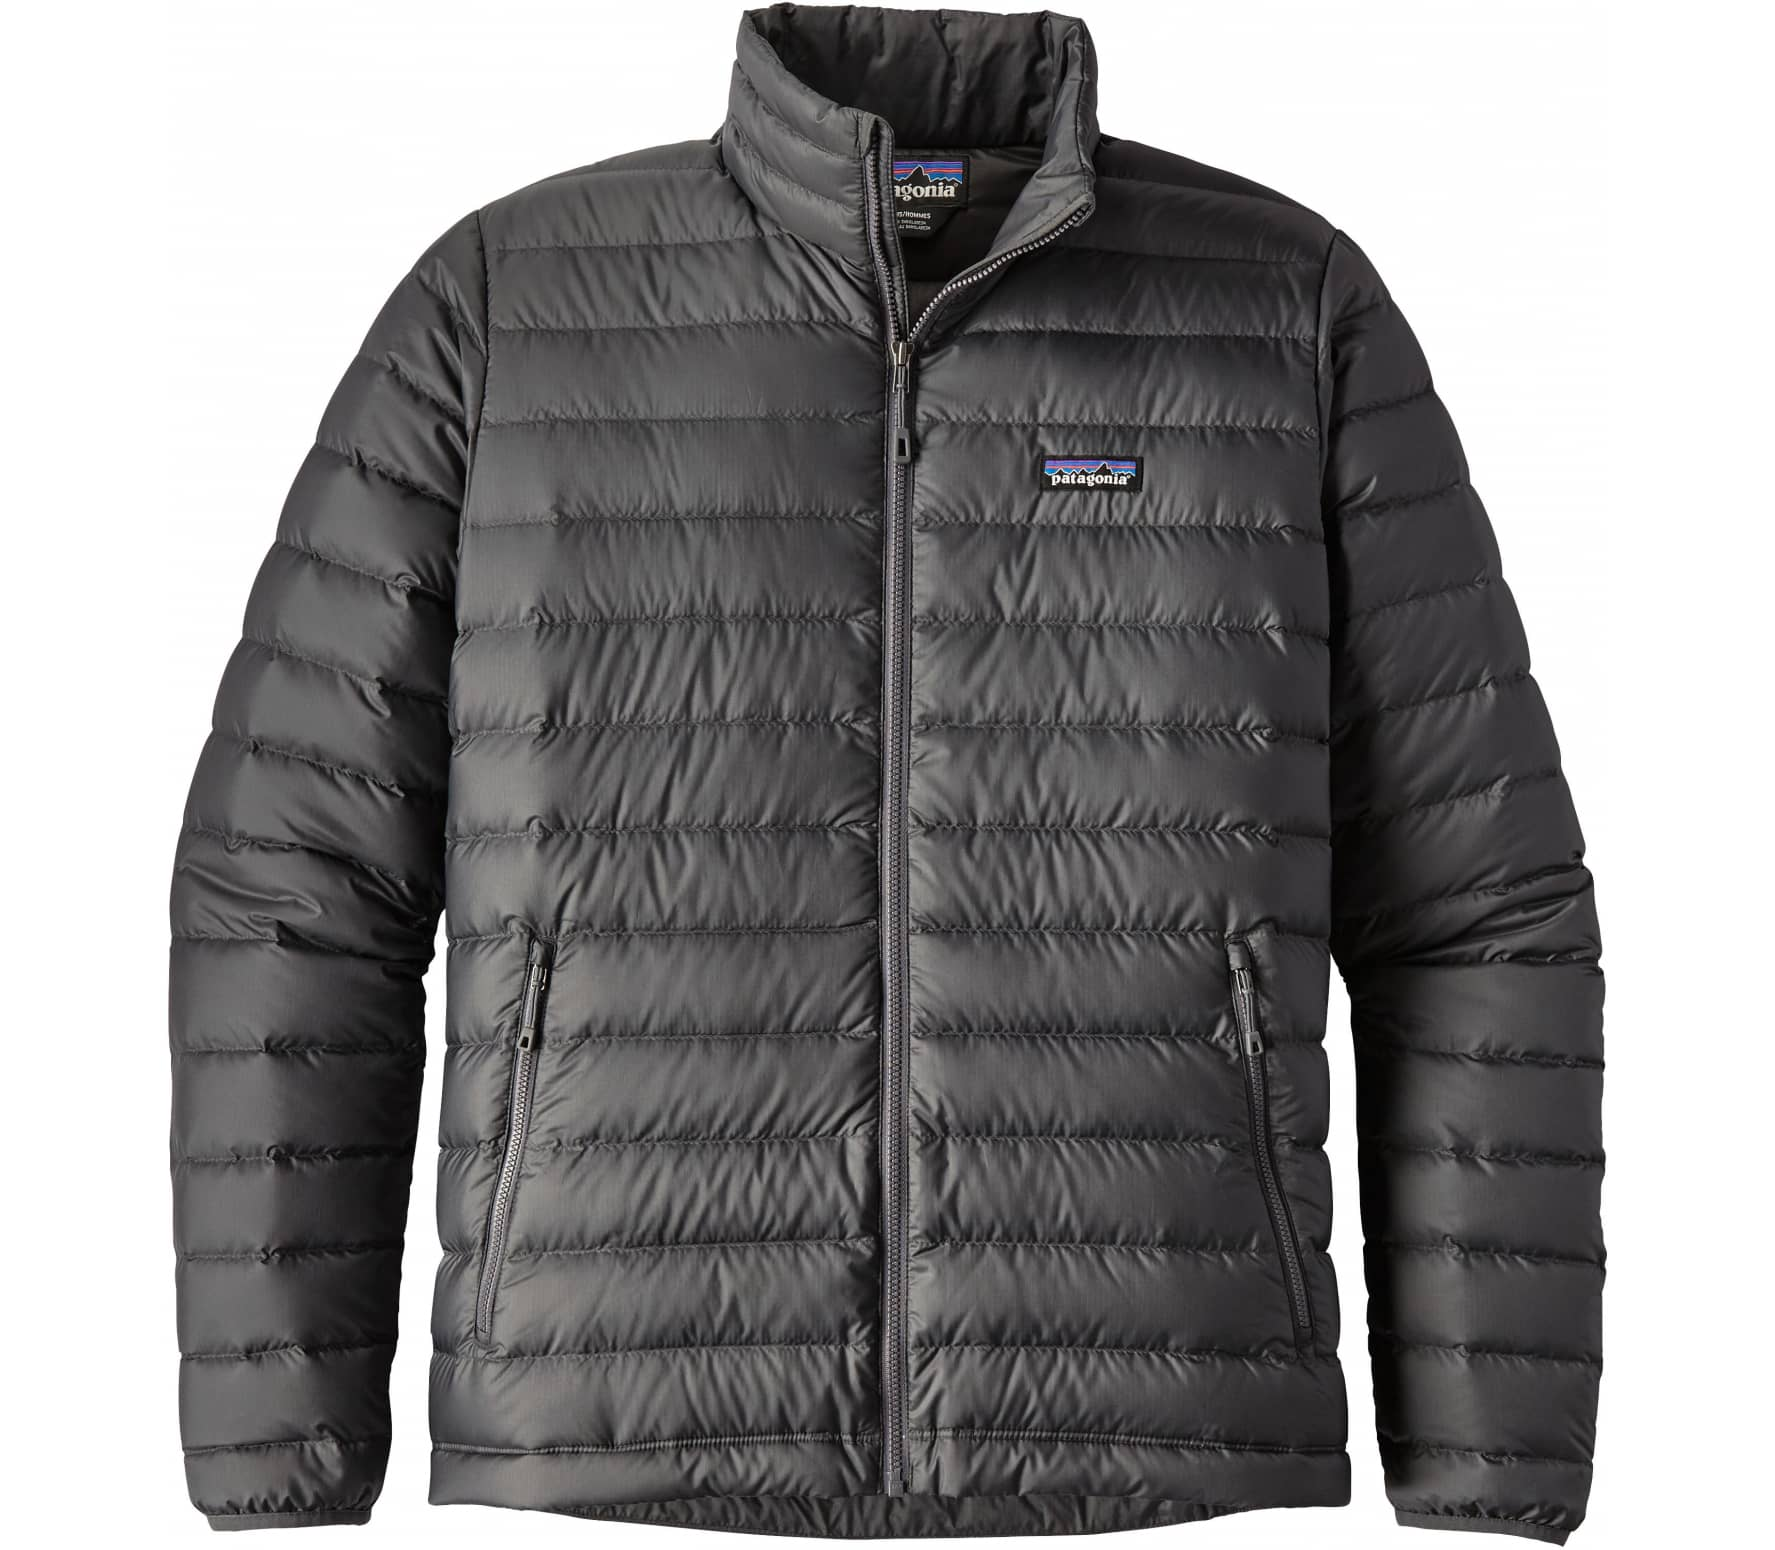 Patagonia - Down sweater men's down jacket (grey)